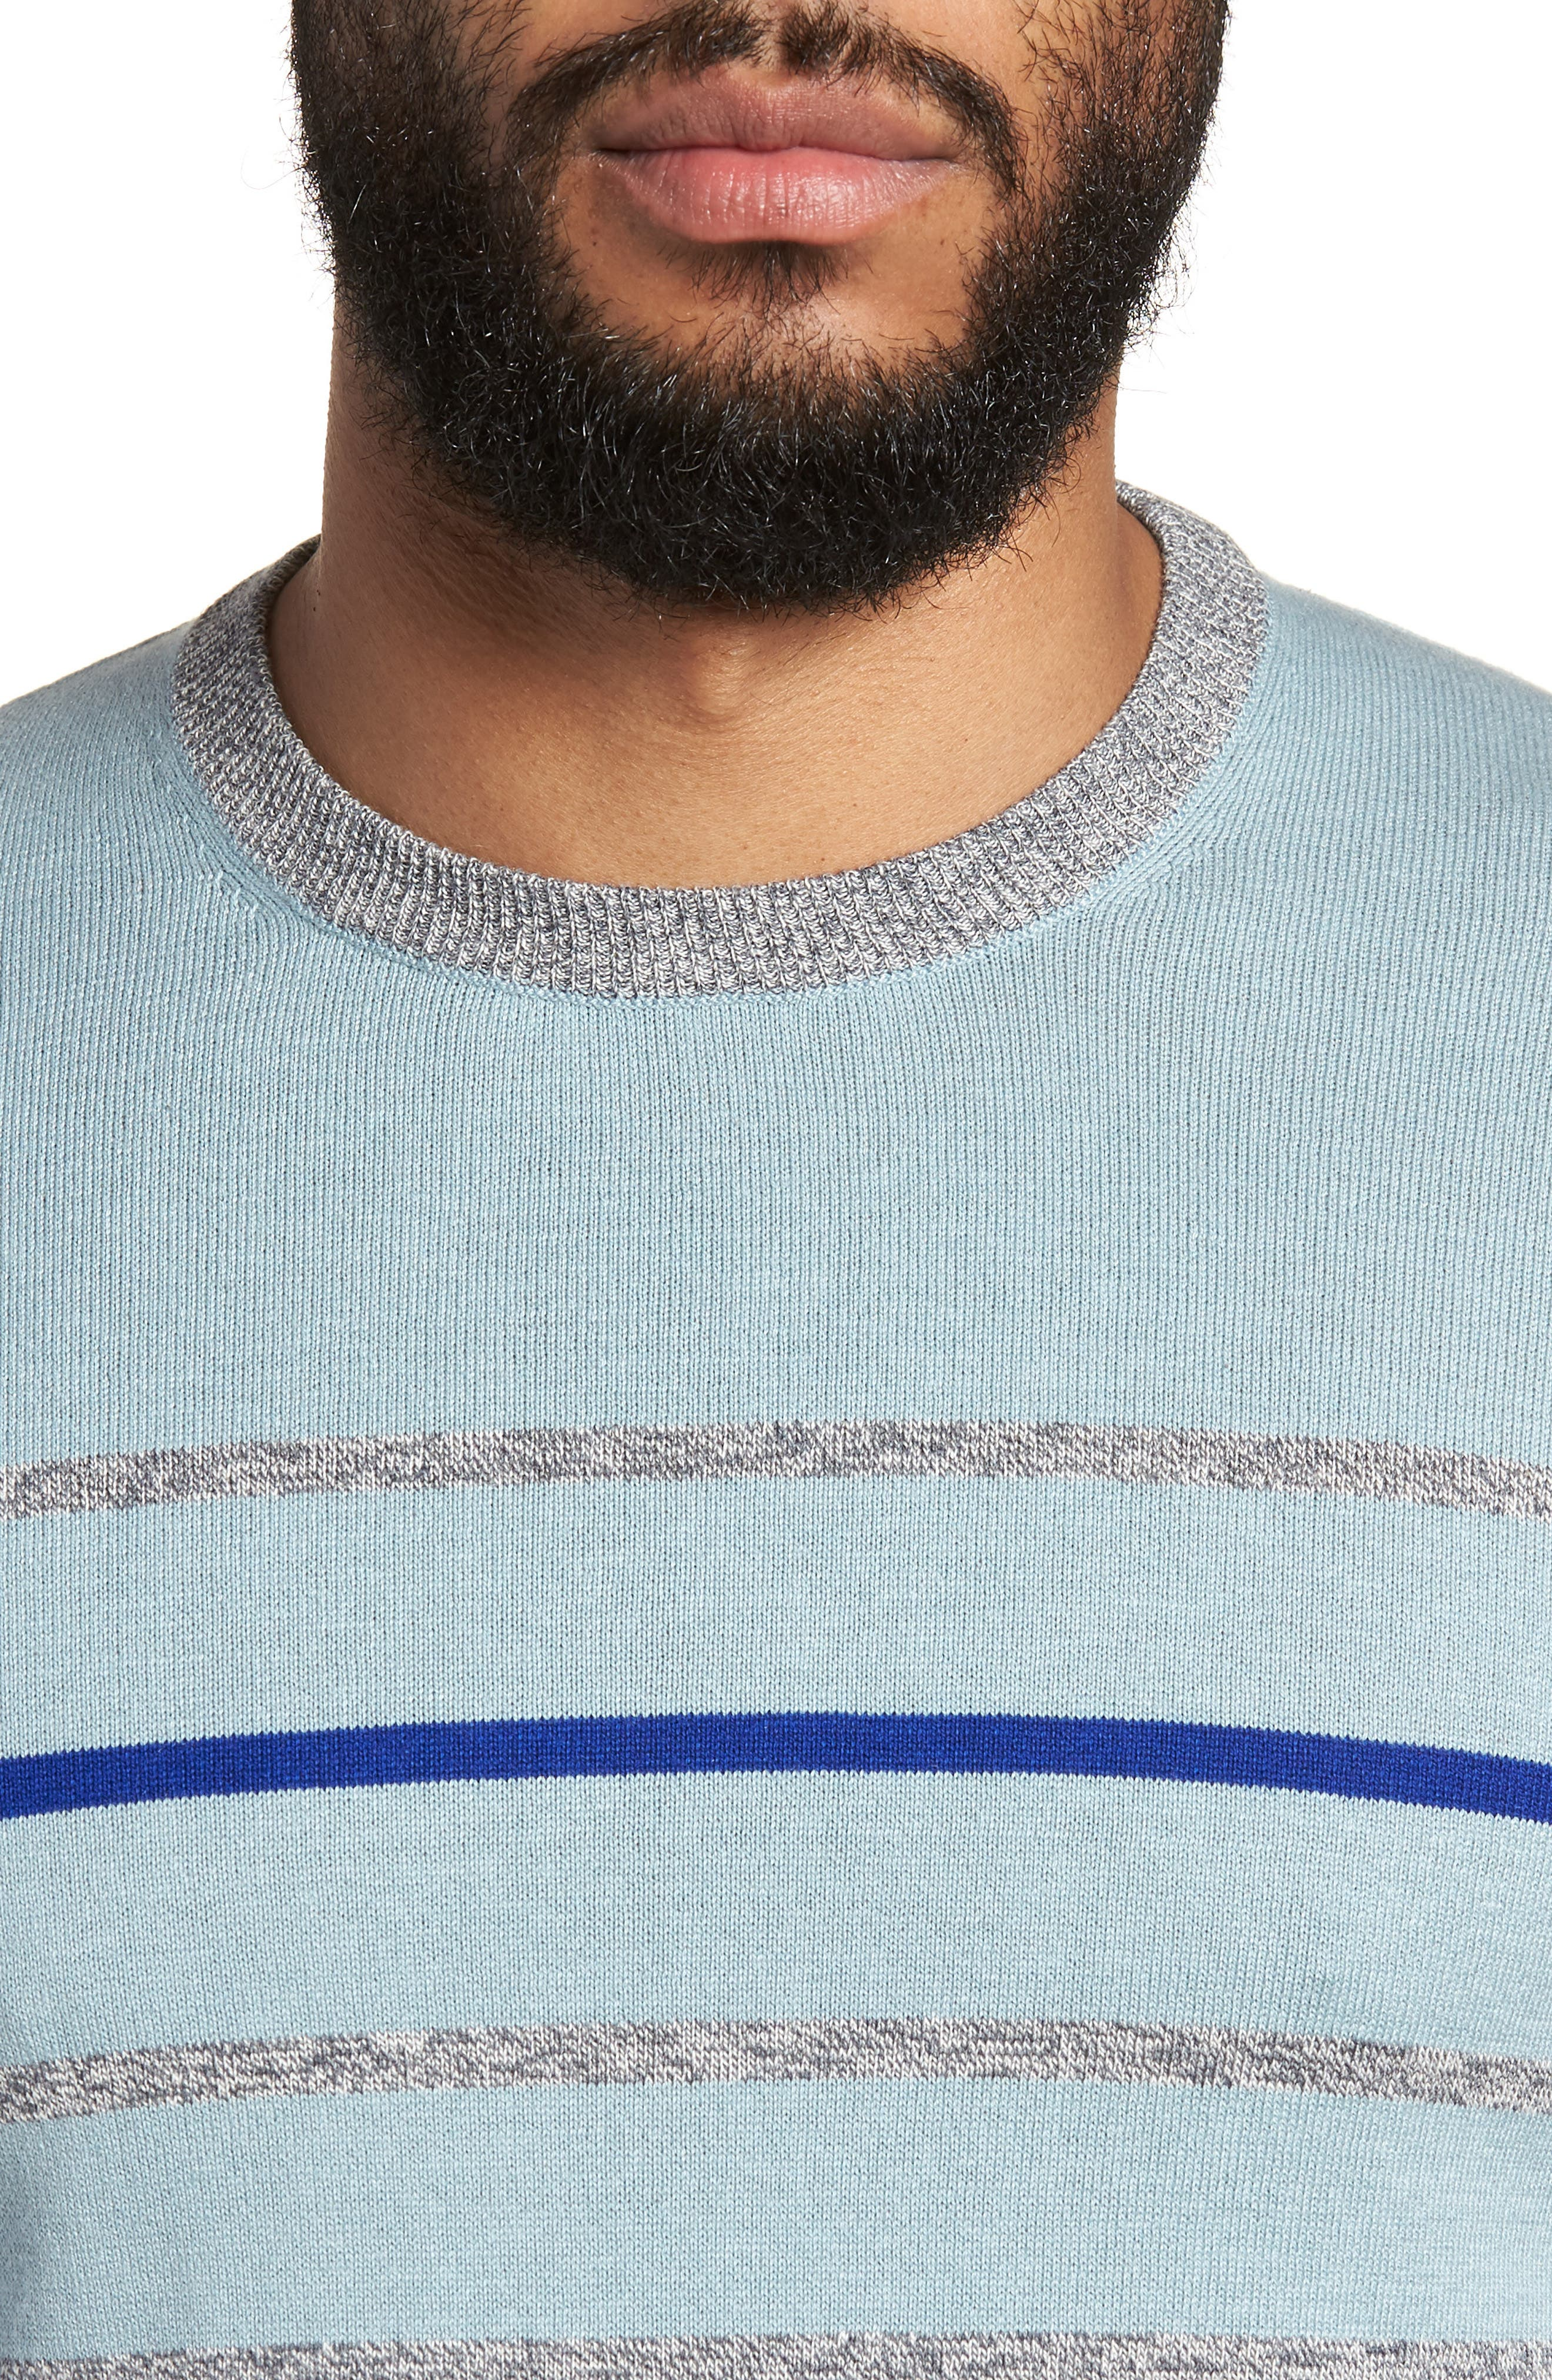 Britnay Trim Fit Stripe Crewneck Sweater,                             Alternate thumbnail 4, color,                             Blue